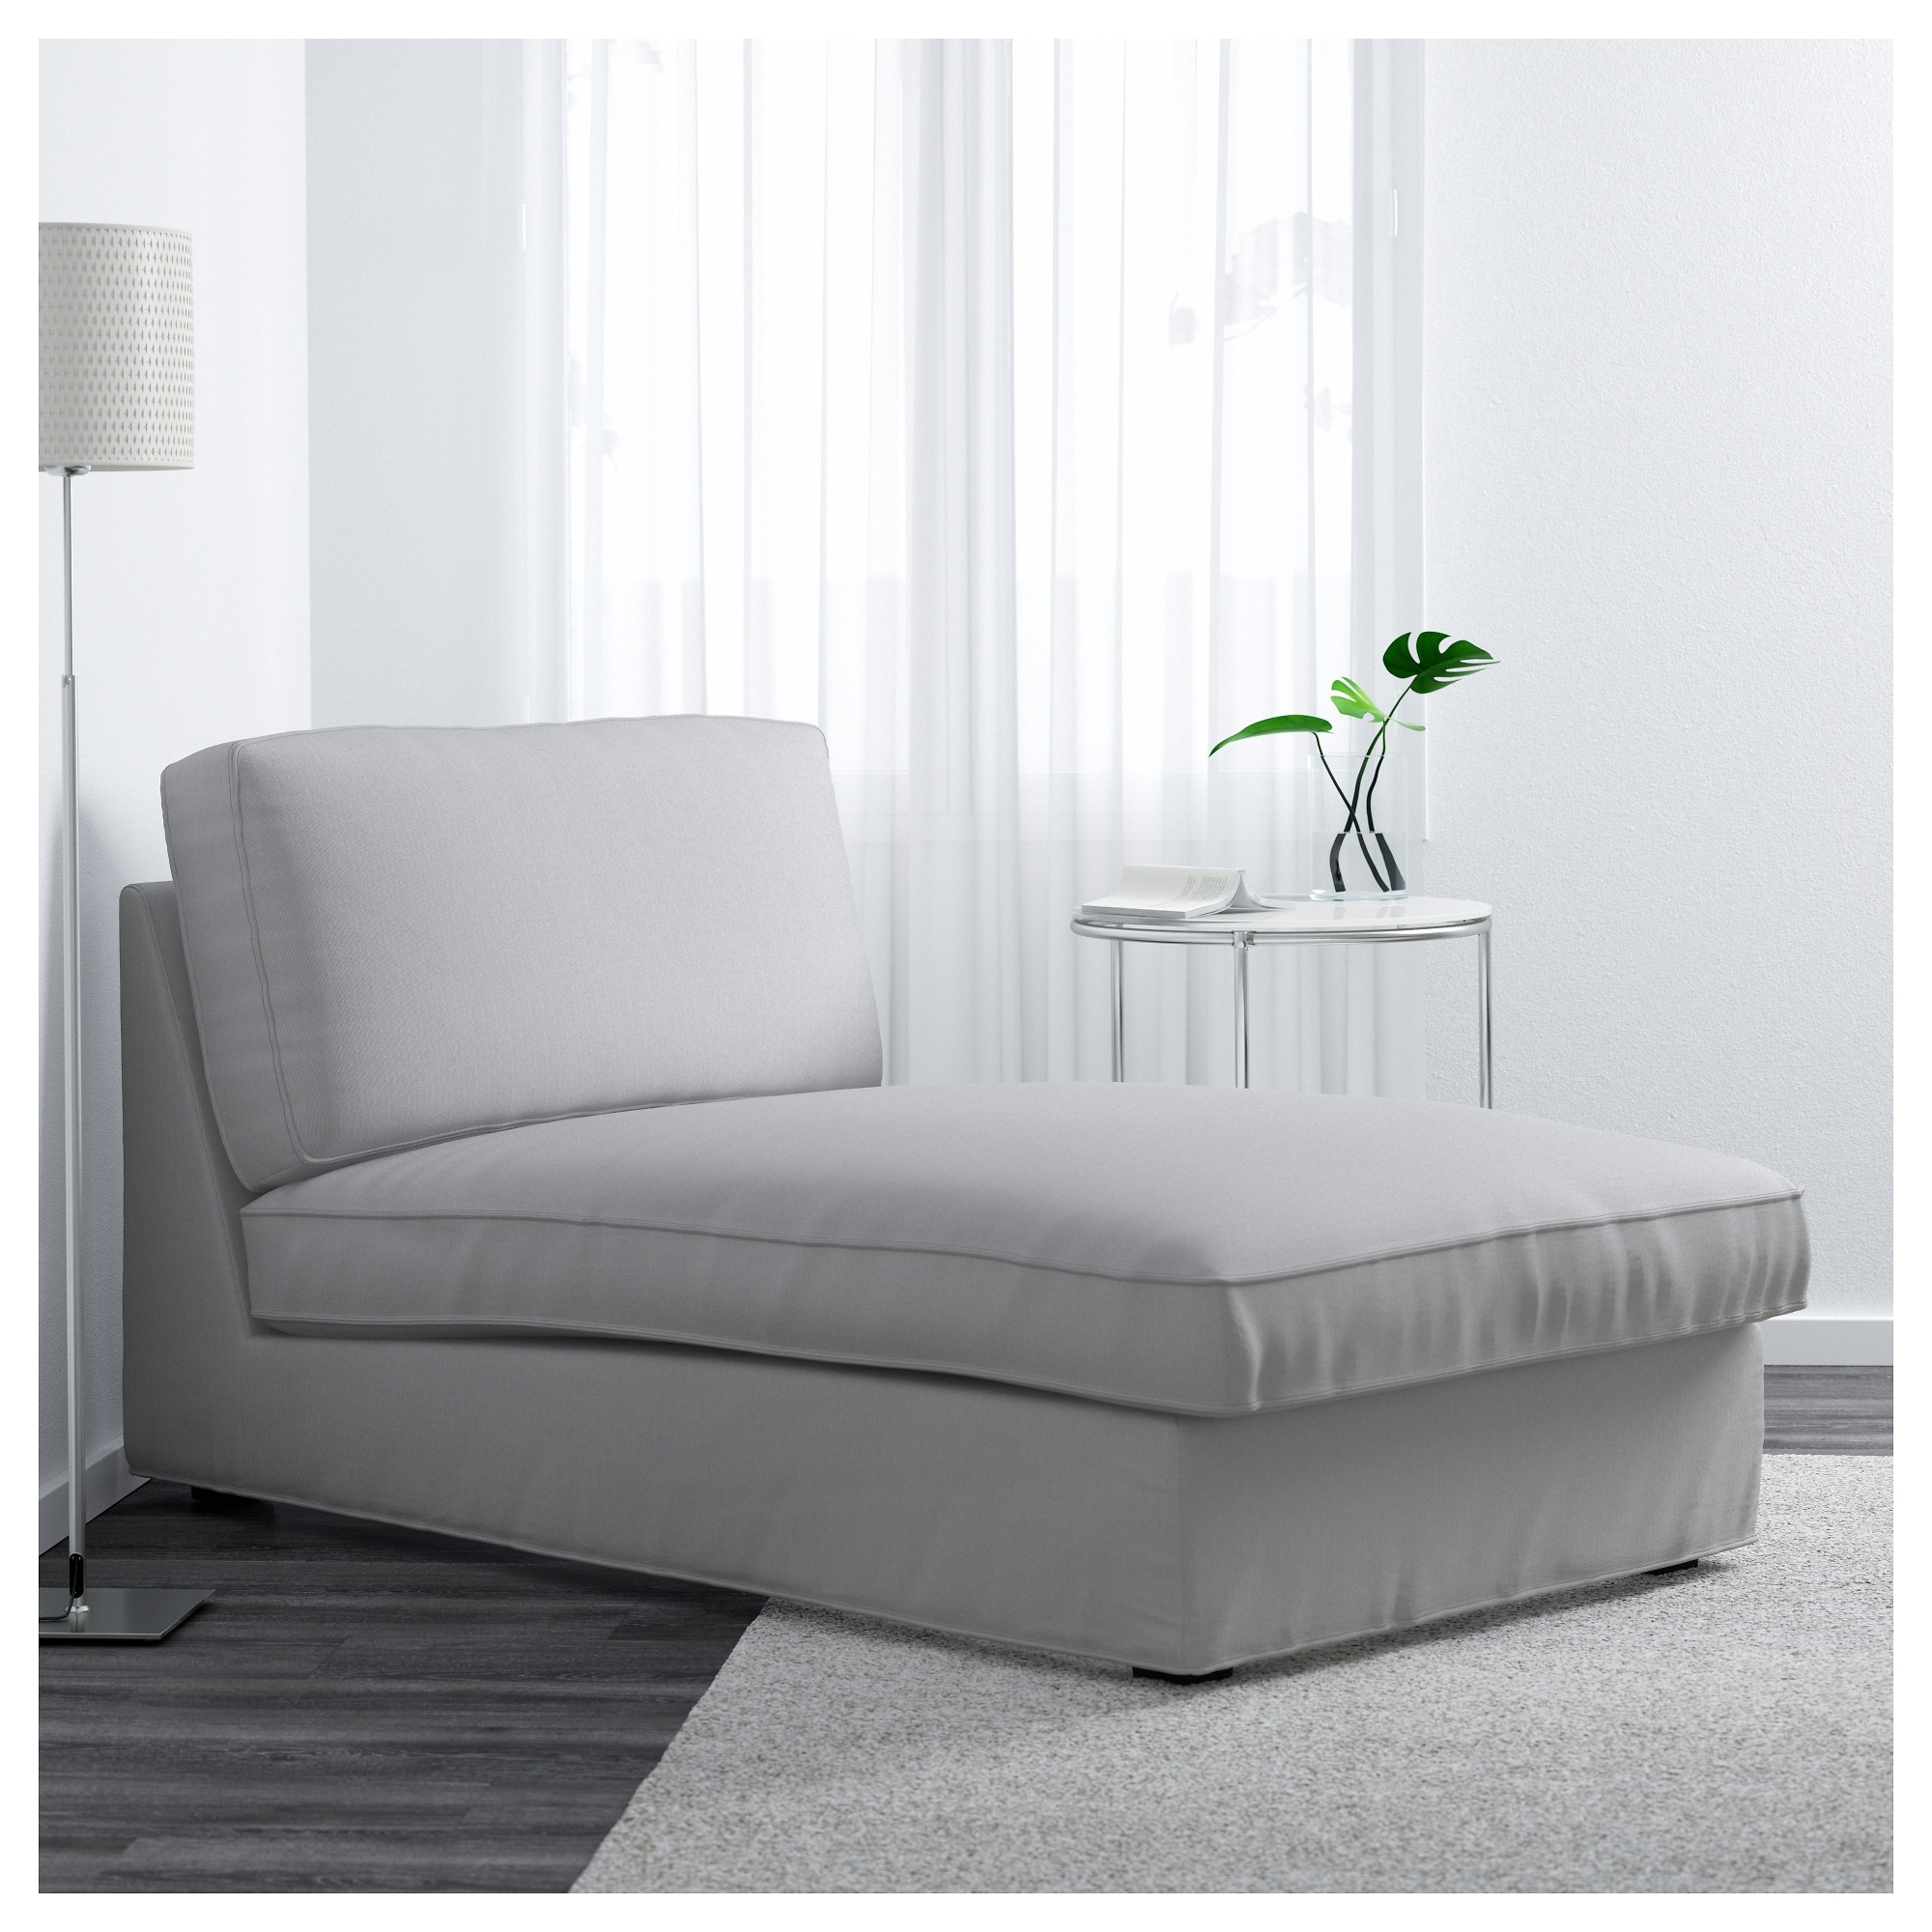 Recent Ikea Kivik Chaises Inside Kivik Chaise Longue Ramna Light Grey – Ikea (View 15 of 15)